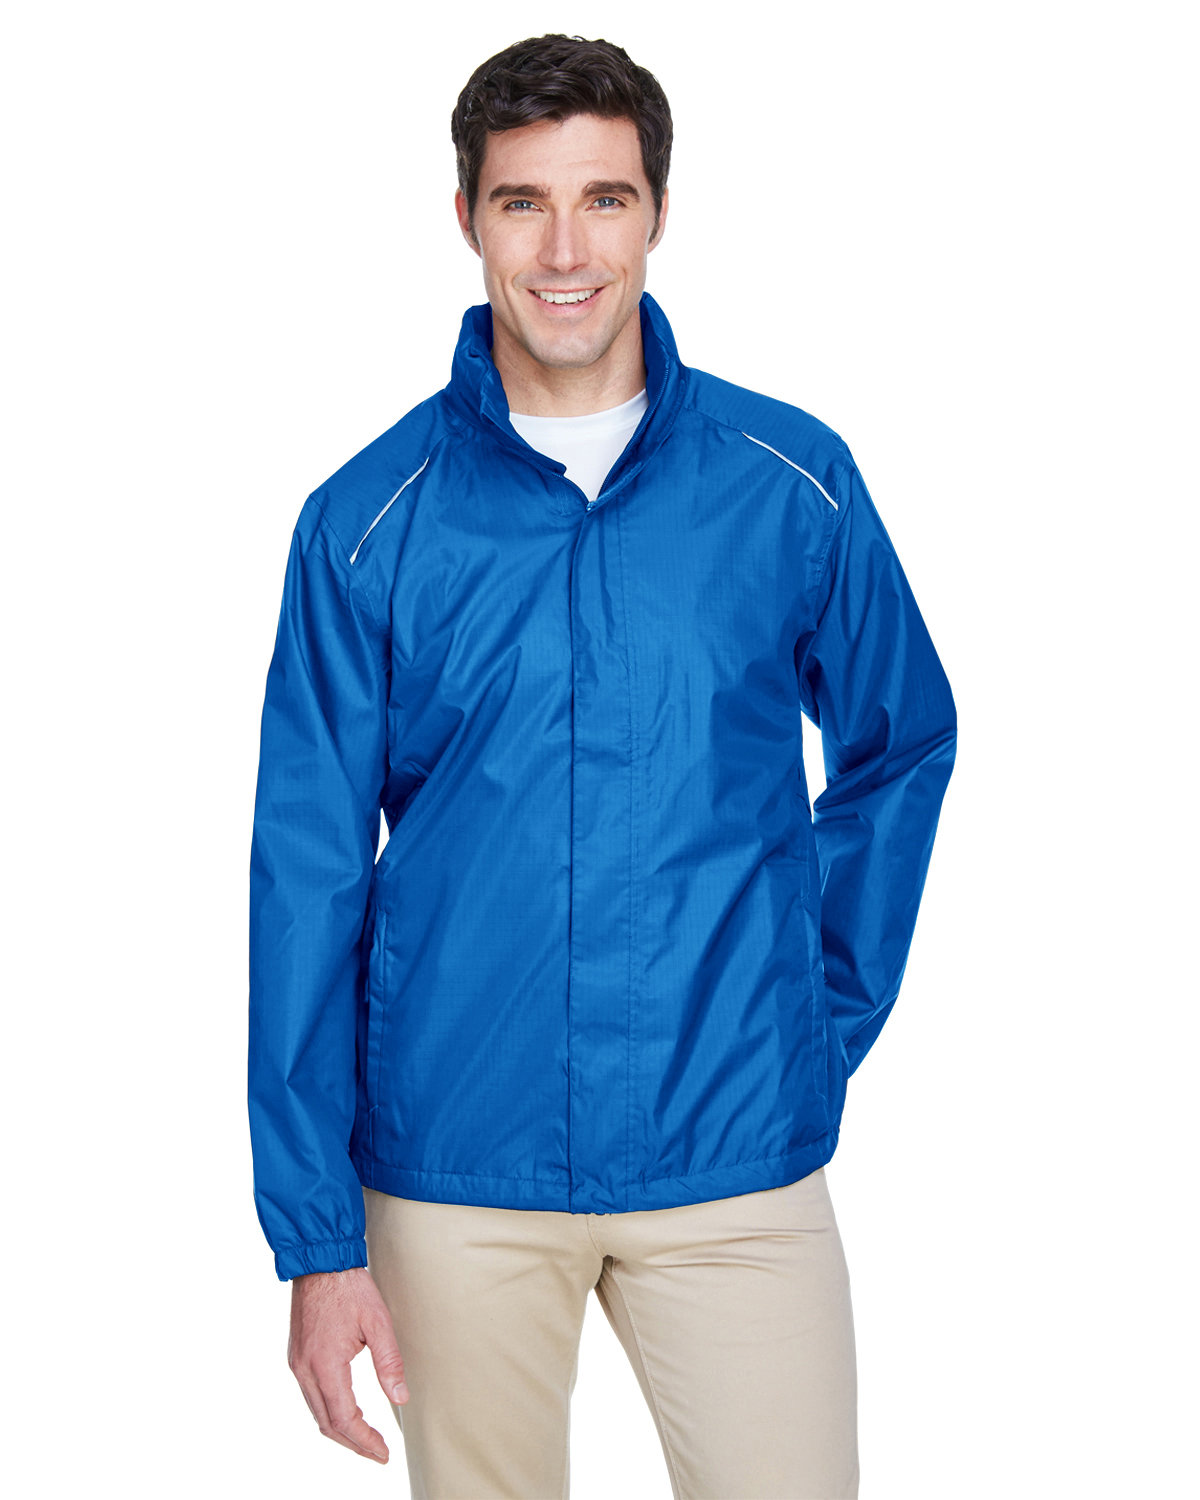 Ash City Core 365 Ladies Climate Variegated Ripstop Jacket